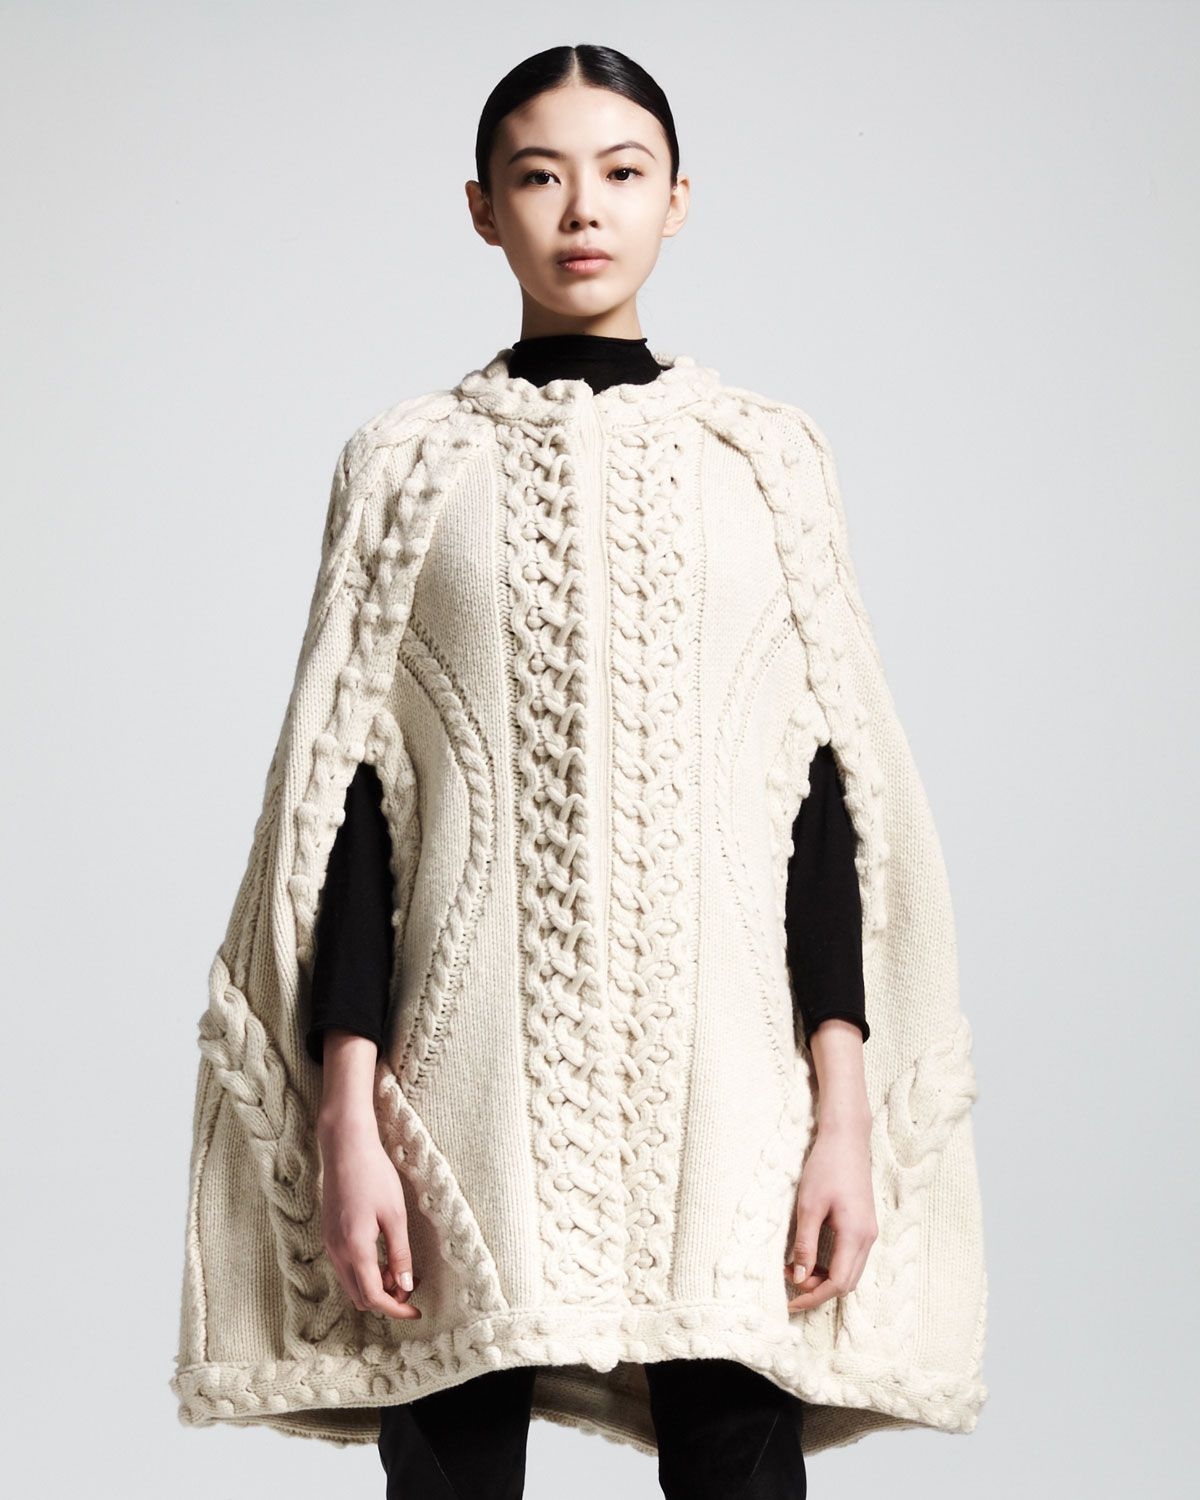 Cable Cape Knitting Pattern : Alexander McQueen Cabled Cape Inspiration -Knit Edition Pintere?